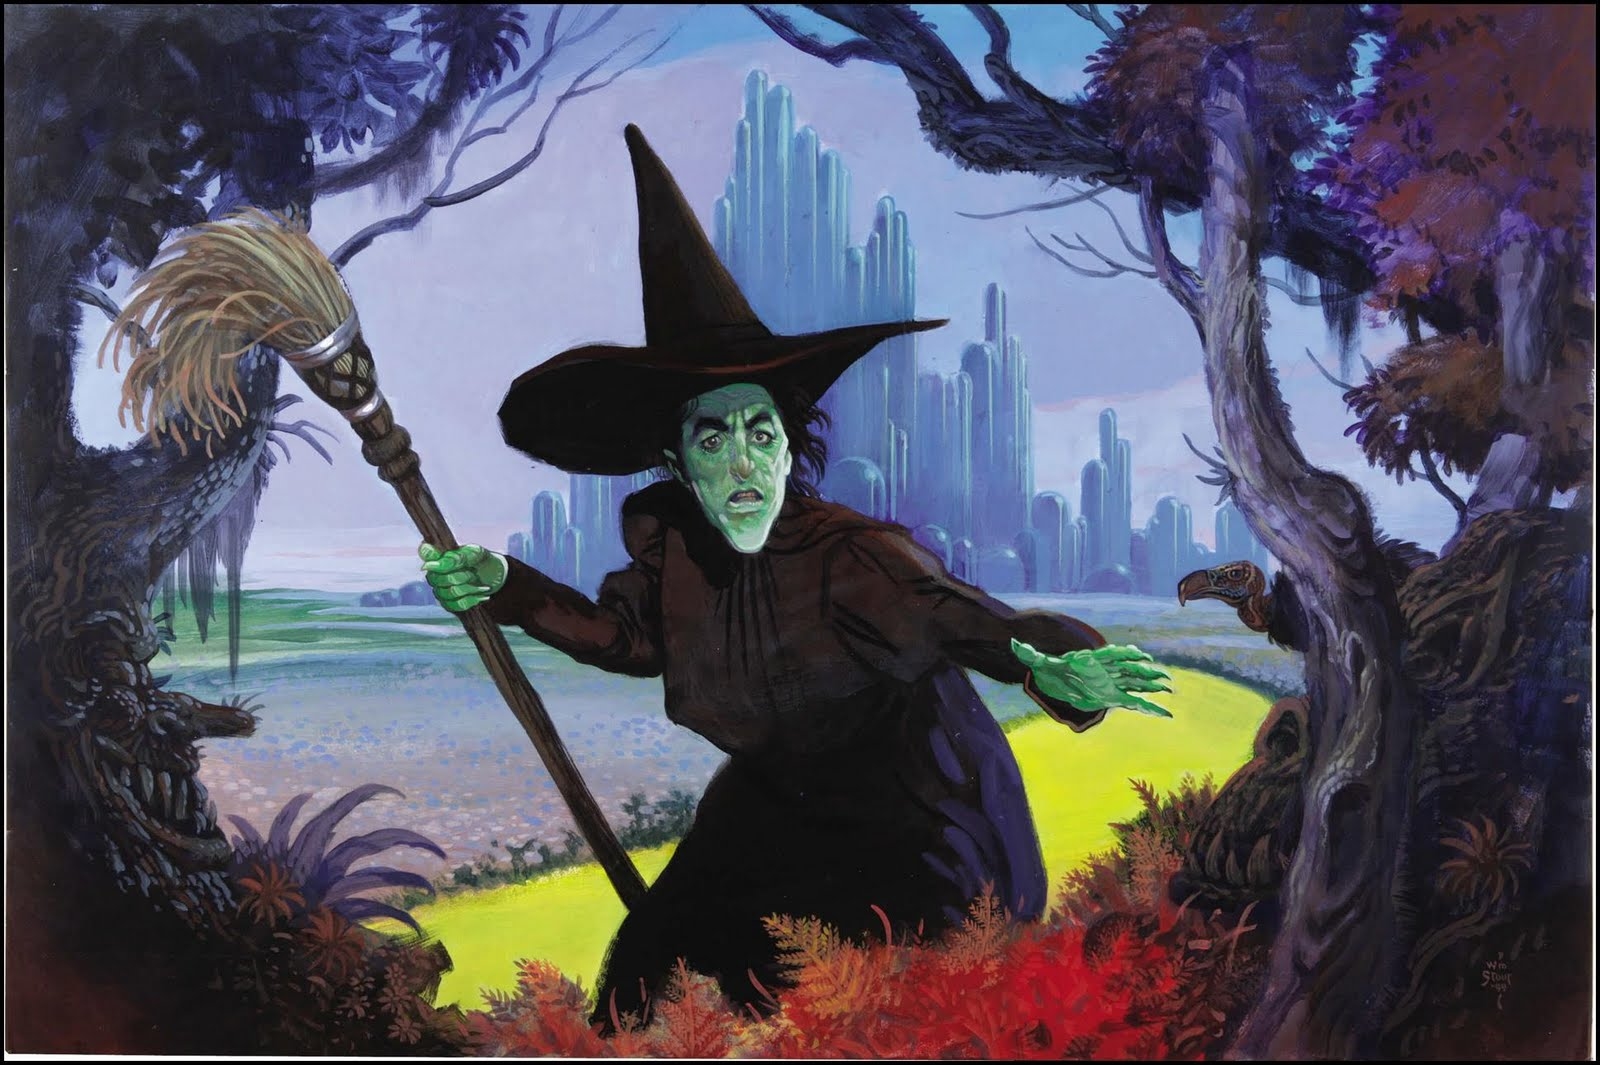 The Wicked Witch of the West by Bill Stout 1999 1600x1065